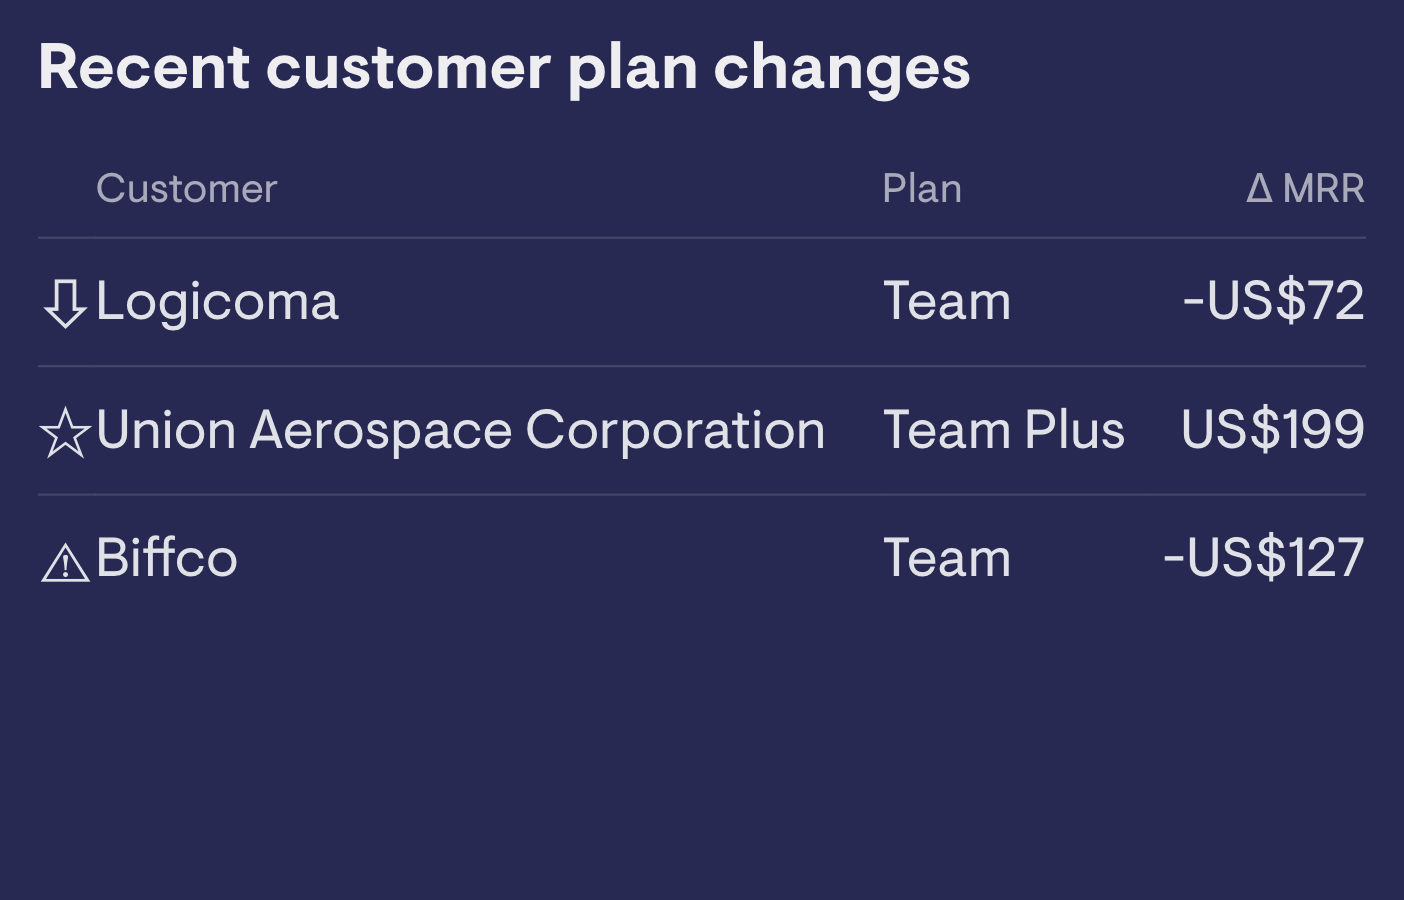 Customer plan changes